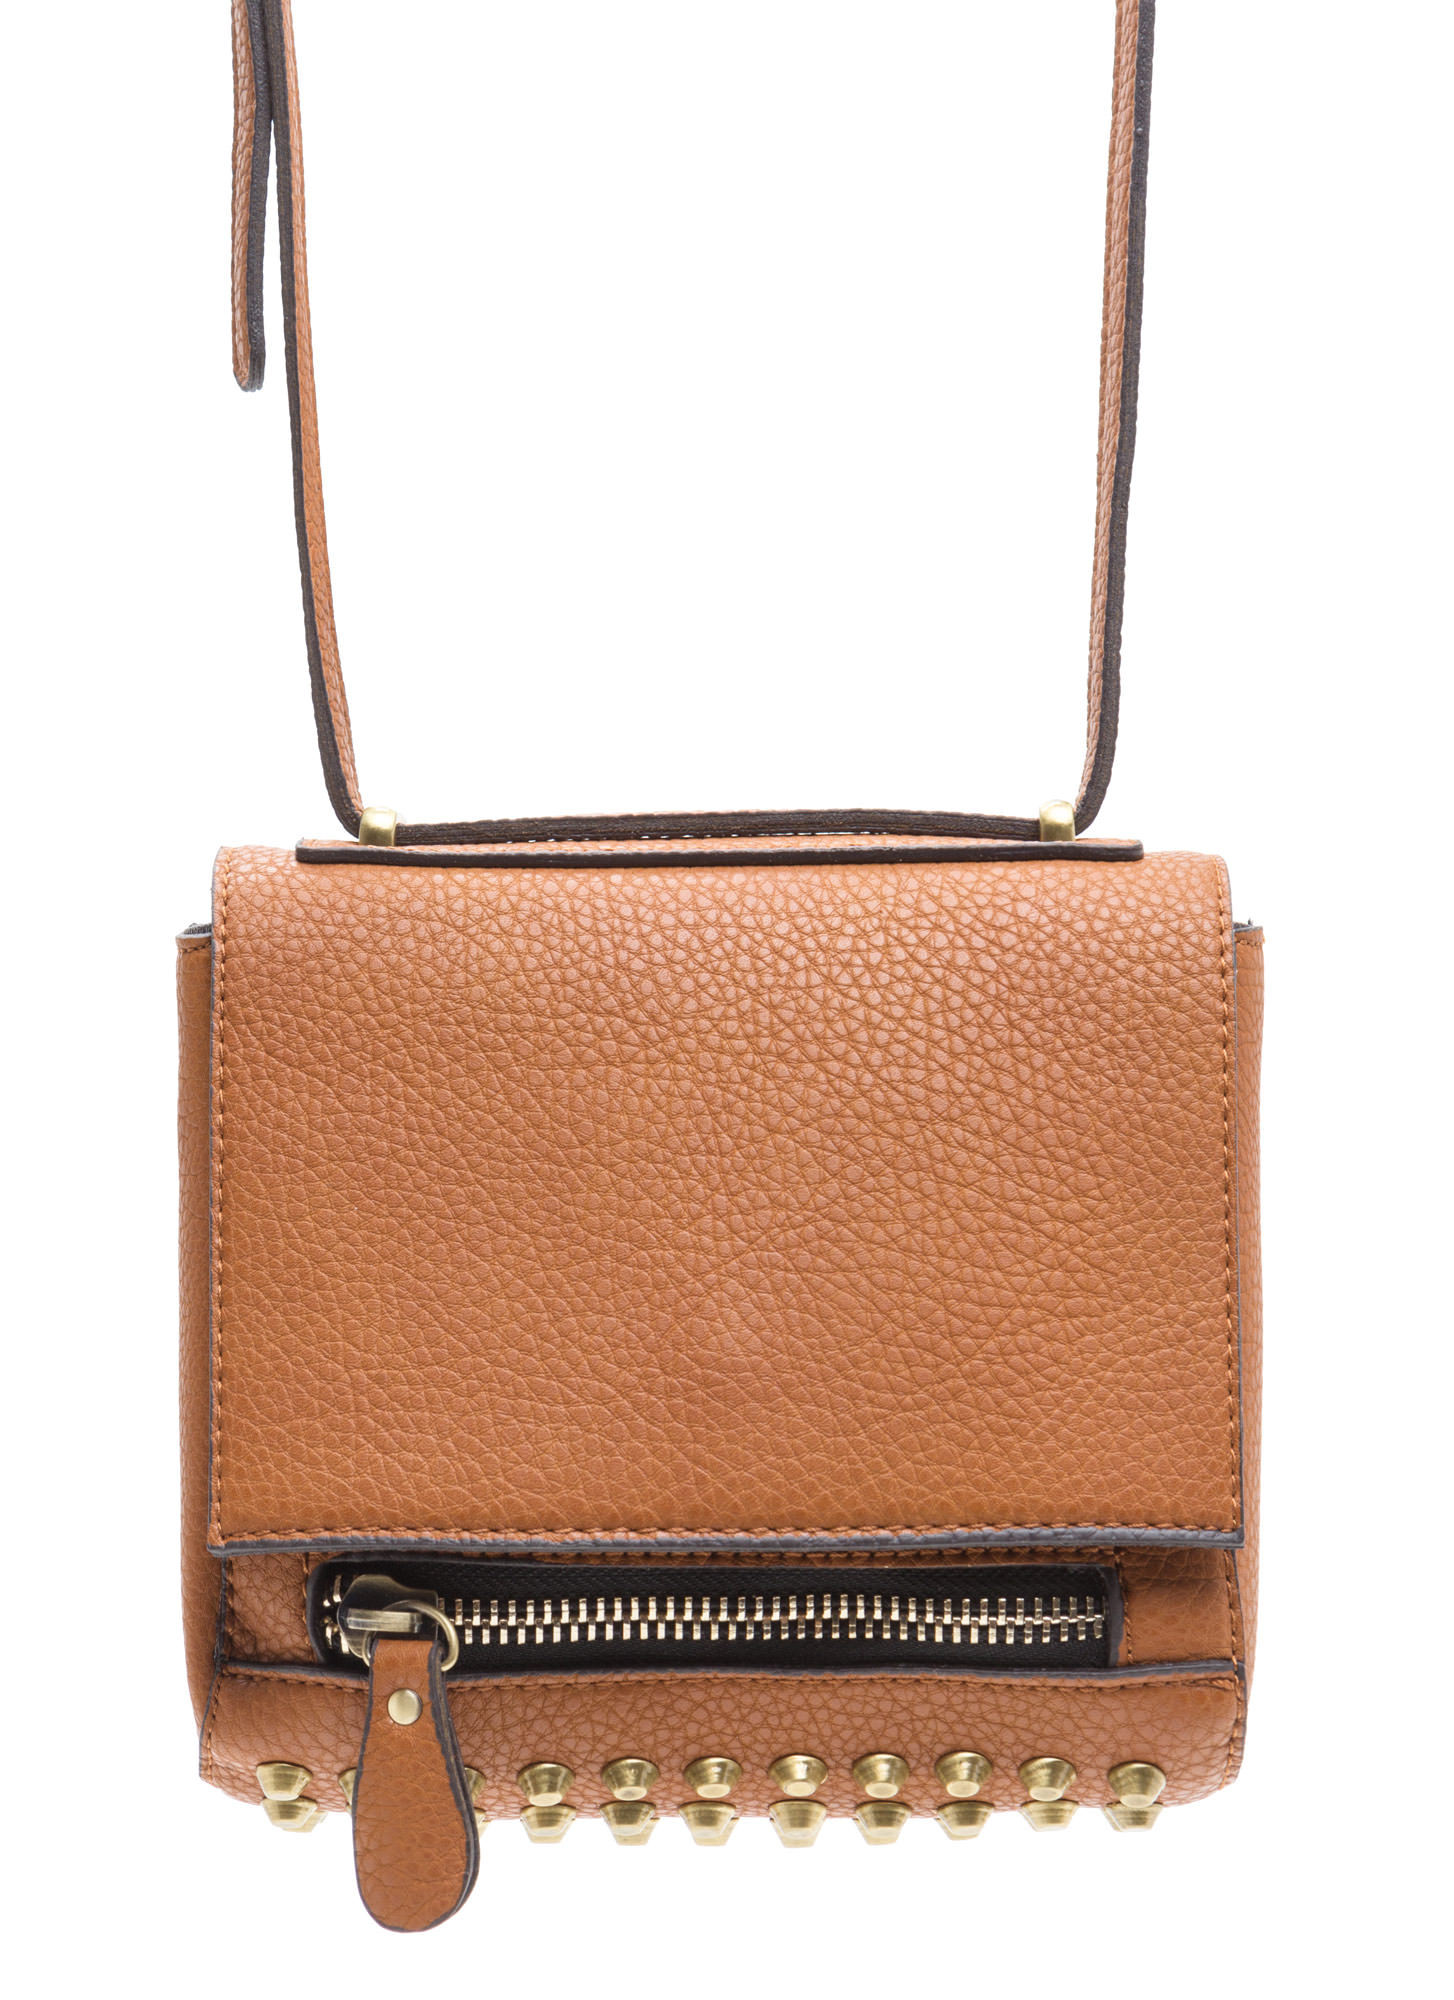 Rocker Studded Cross-Body Bag BROWN